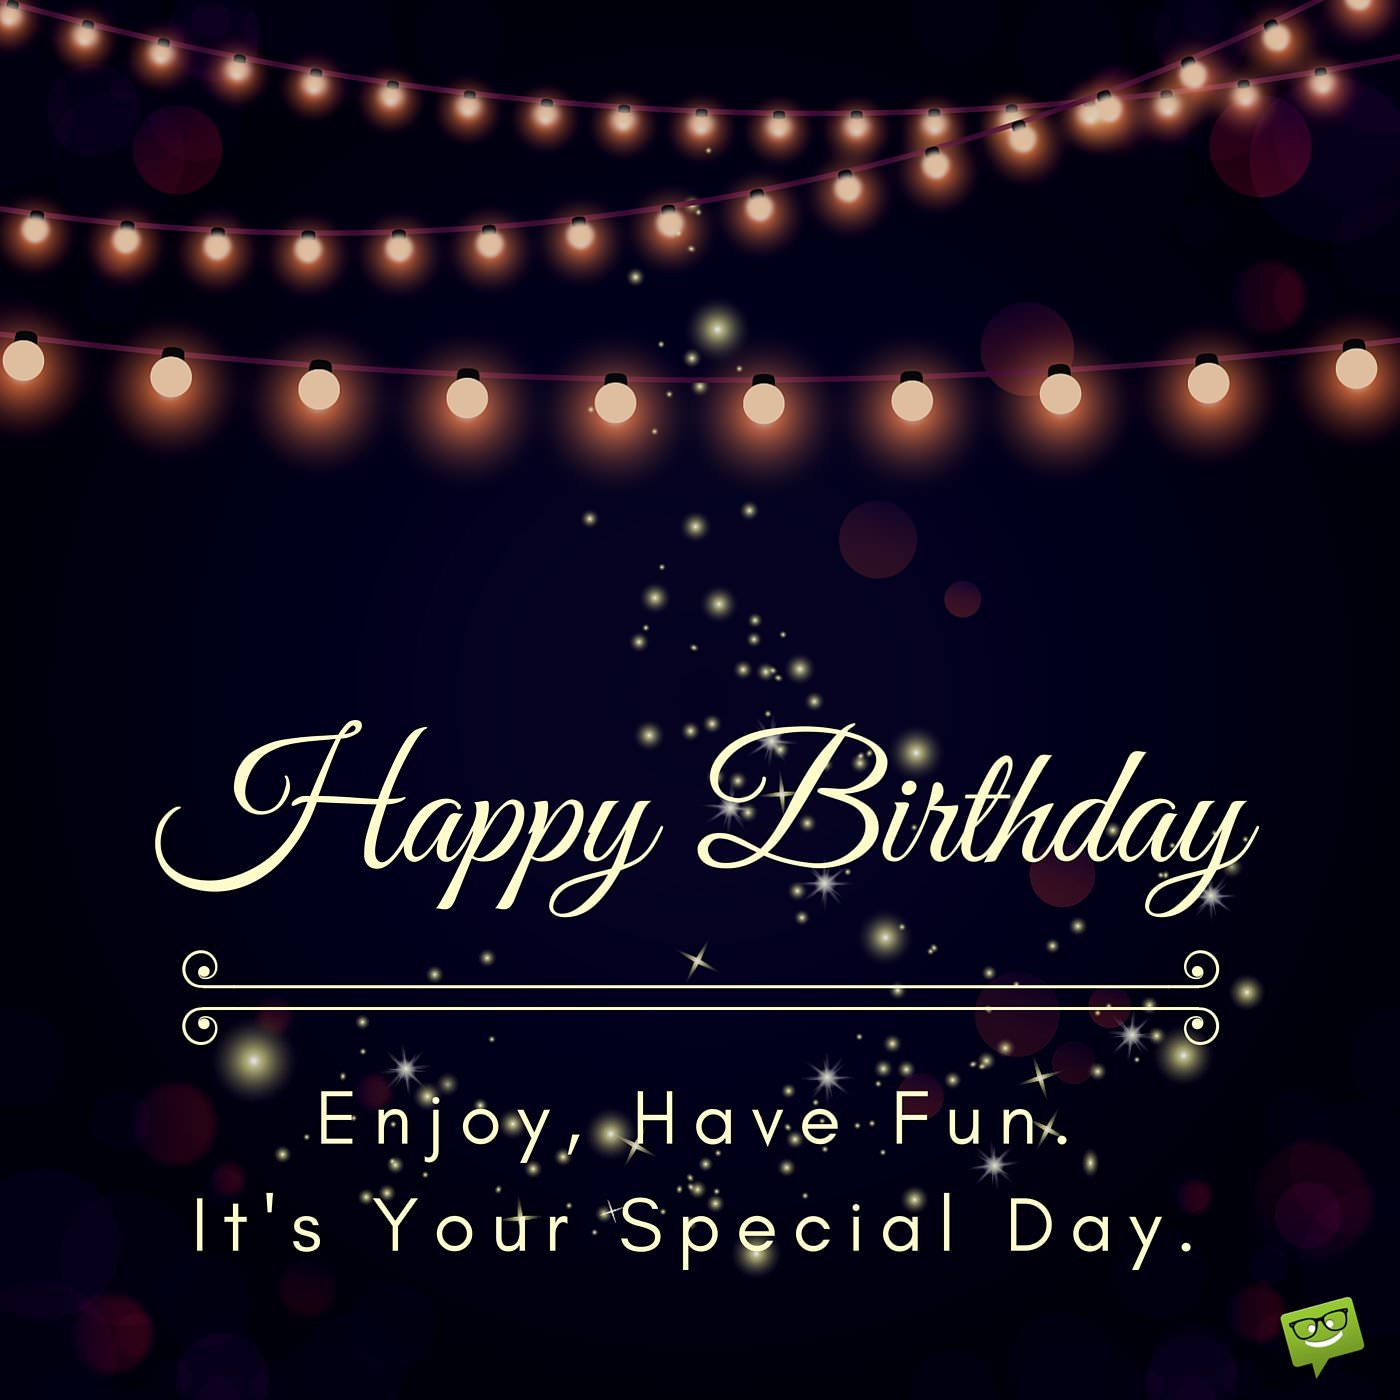 Funny Happy Birthday Quotes For Friends Facebook Just Fun: Happy Birthday Wishes For Your Facebook Friends